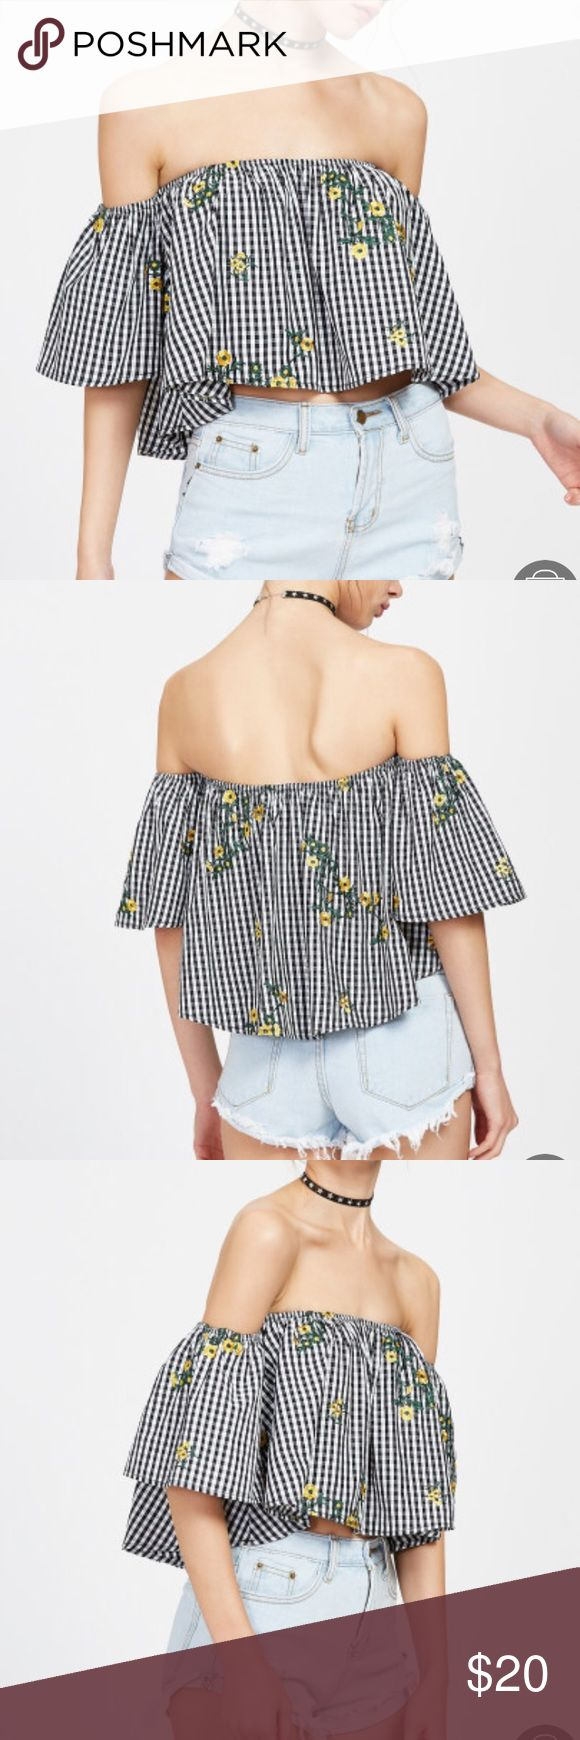 NWOT Off shoulder gingham embroidered trapeze top Black and white checkered Bardot neckline off the shoulder top with embroidered yellow flowers. New and never worn. NOT from Asos. ASOS Tops Blouses